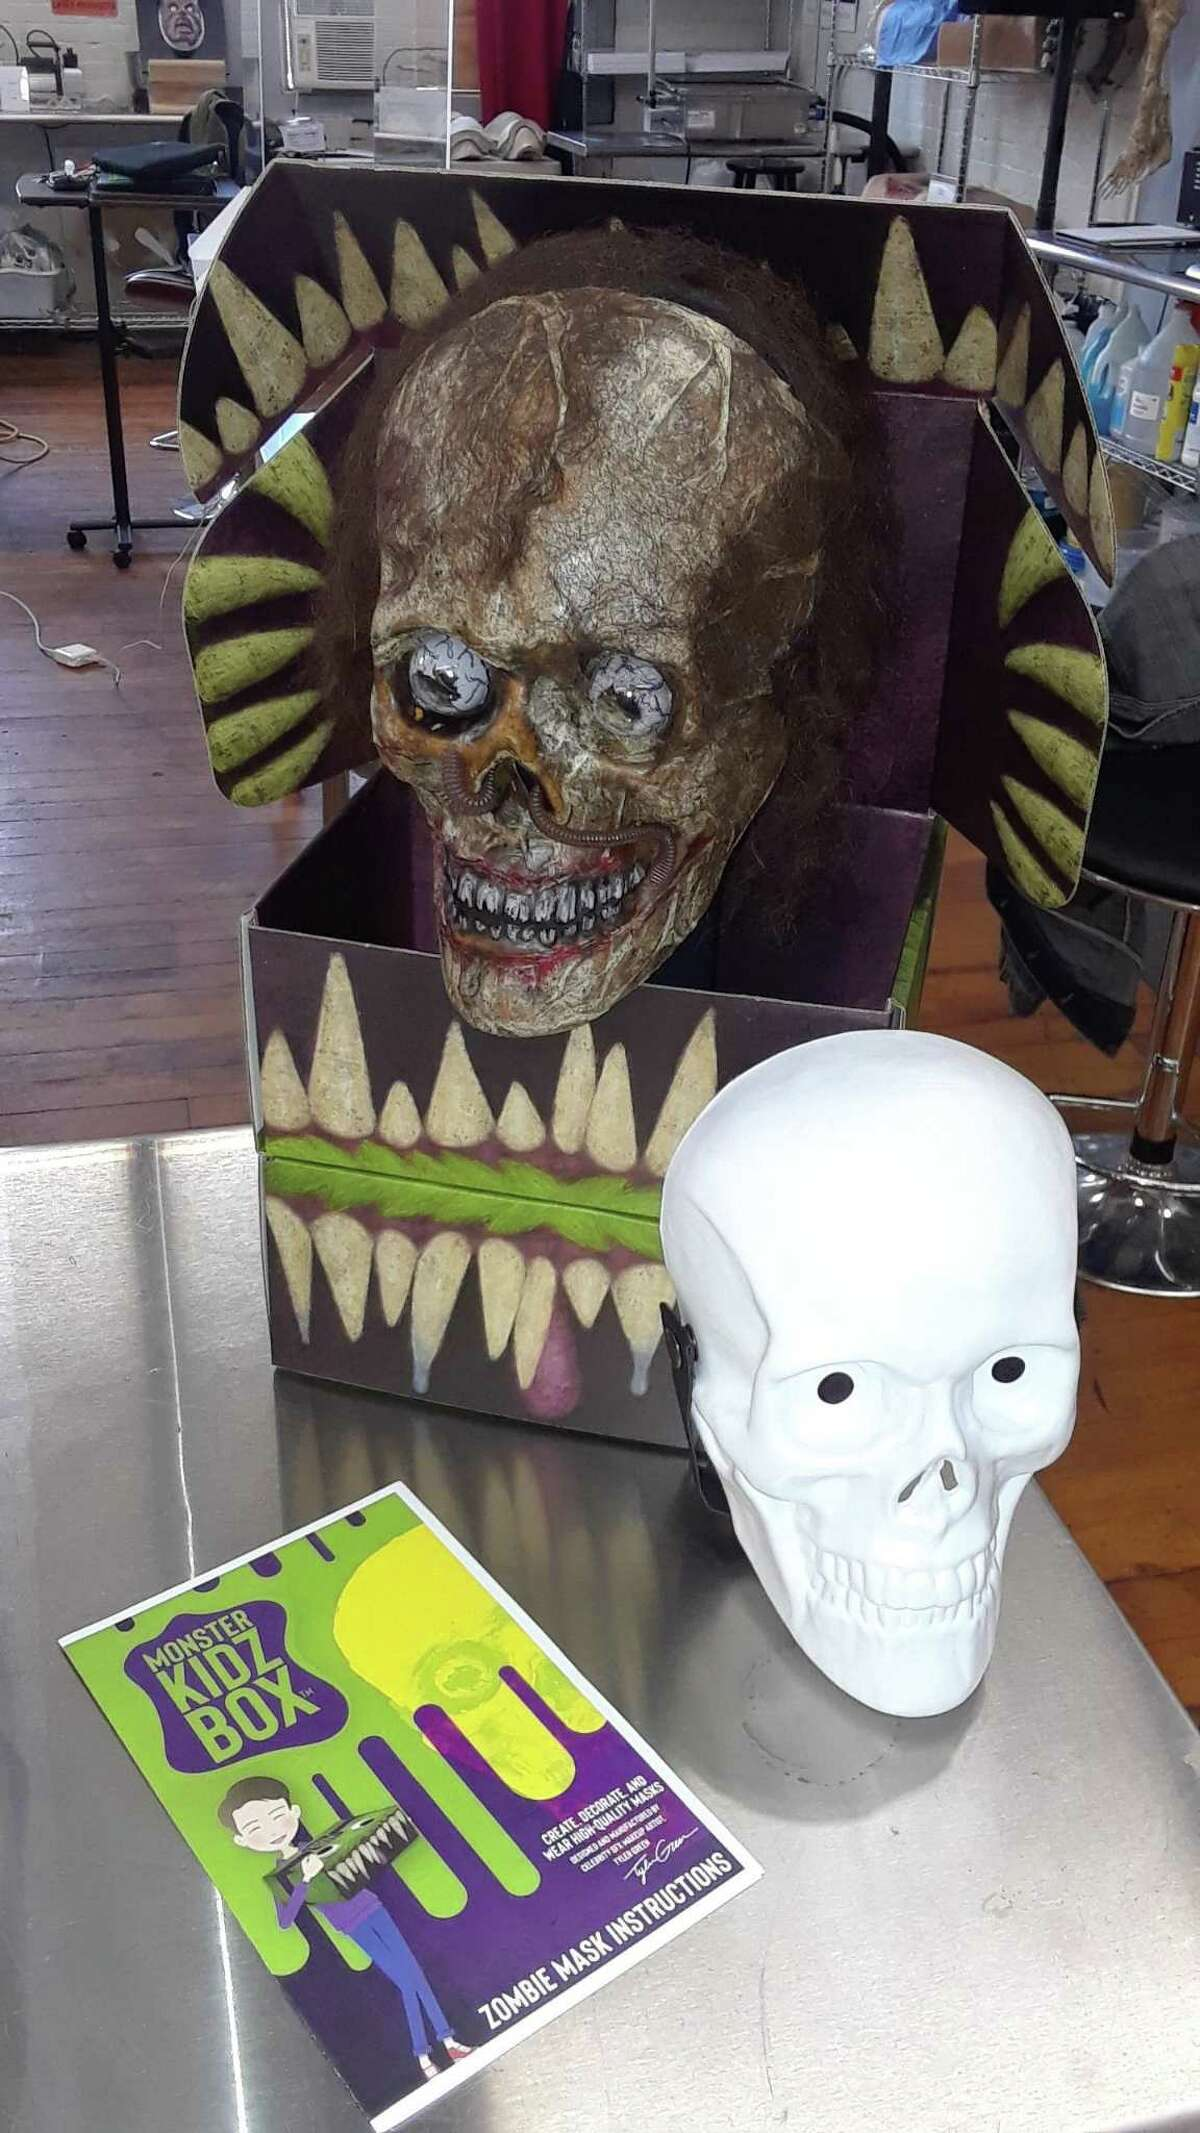 Tyler Green, a special effects artist whose studio is located at Whiting Mills in Winsted, has created a Kidz Box with everything a child needs to make their own custom mask. As Halloween approaches and parents seek fun alternatives to trick or treating and large gatherings, the Kidz Box is selling very well, Green said.